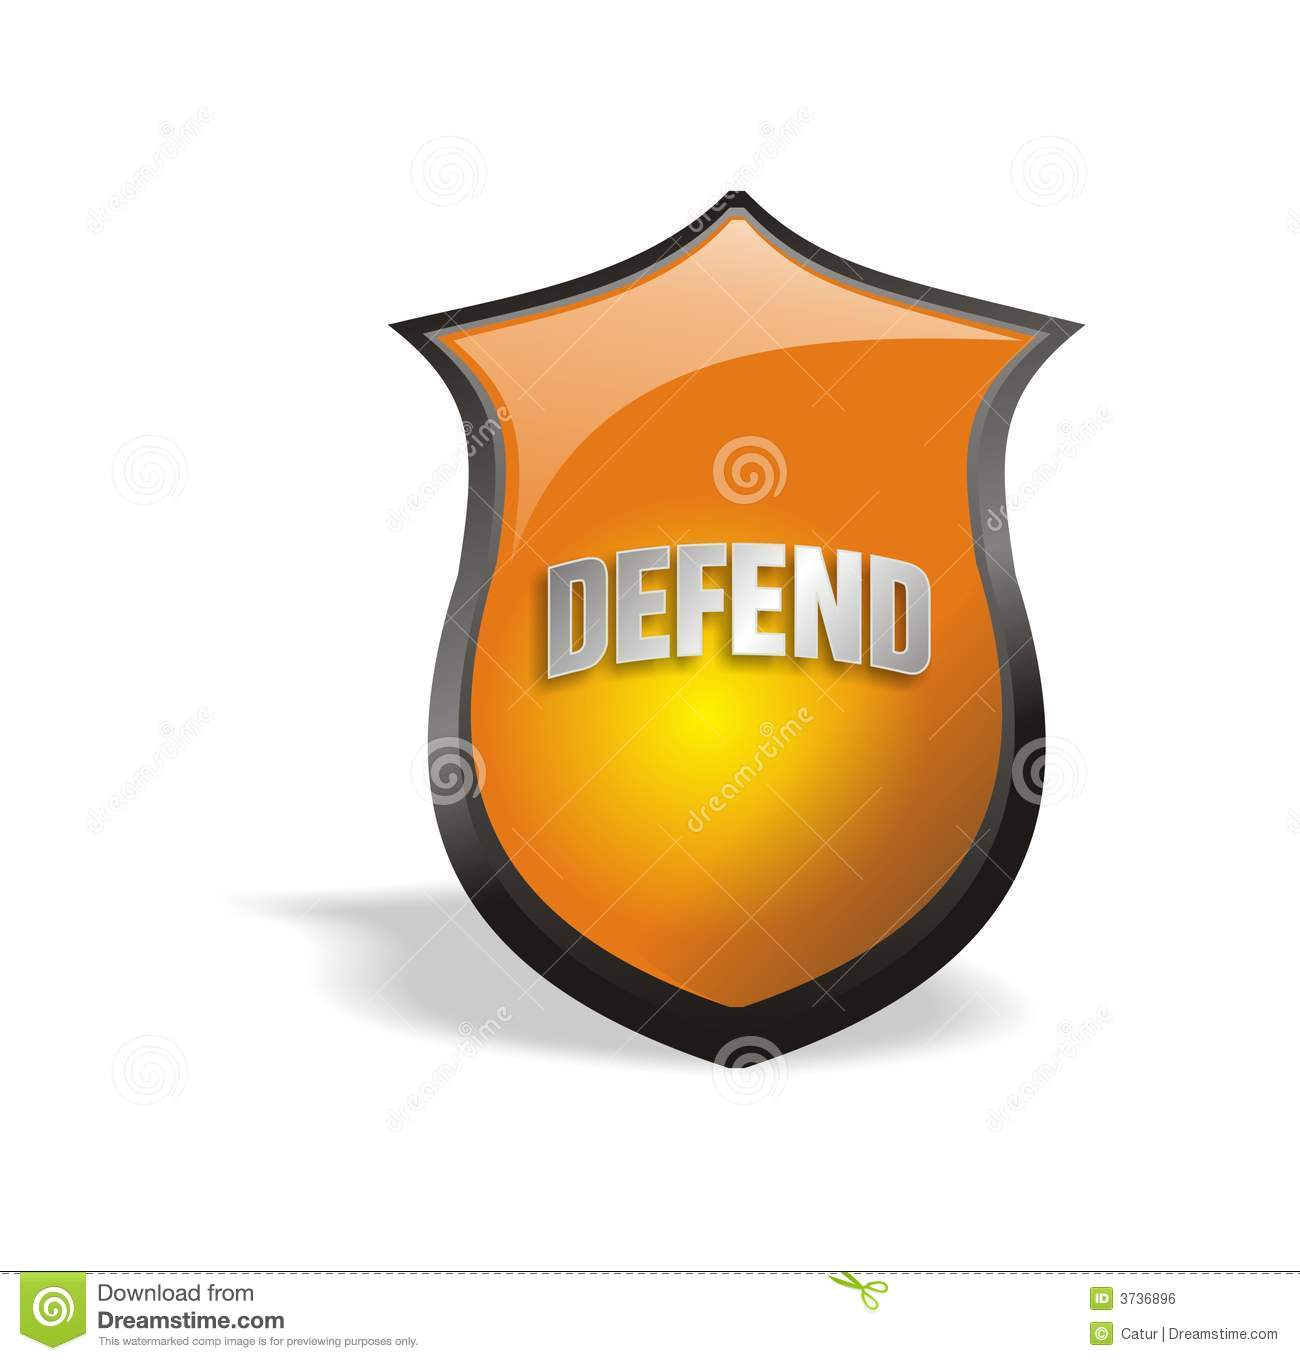 Cool 2.0 Shield Defend Royalty Free Stock Image